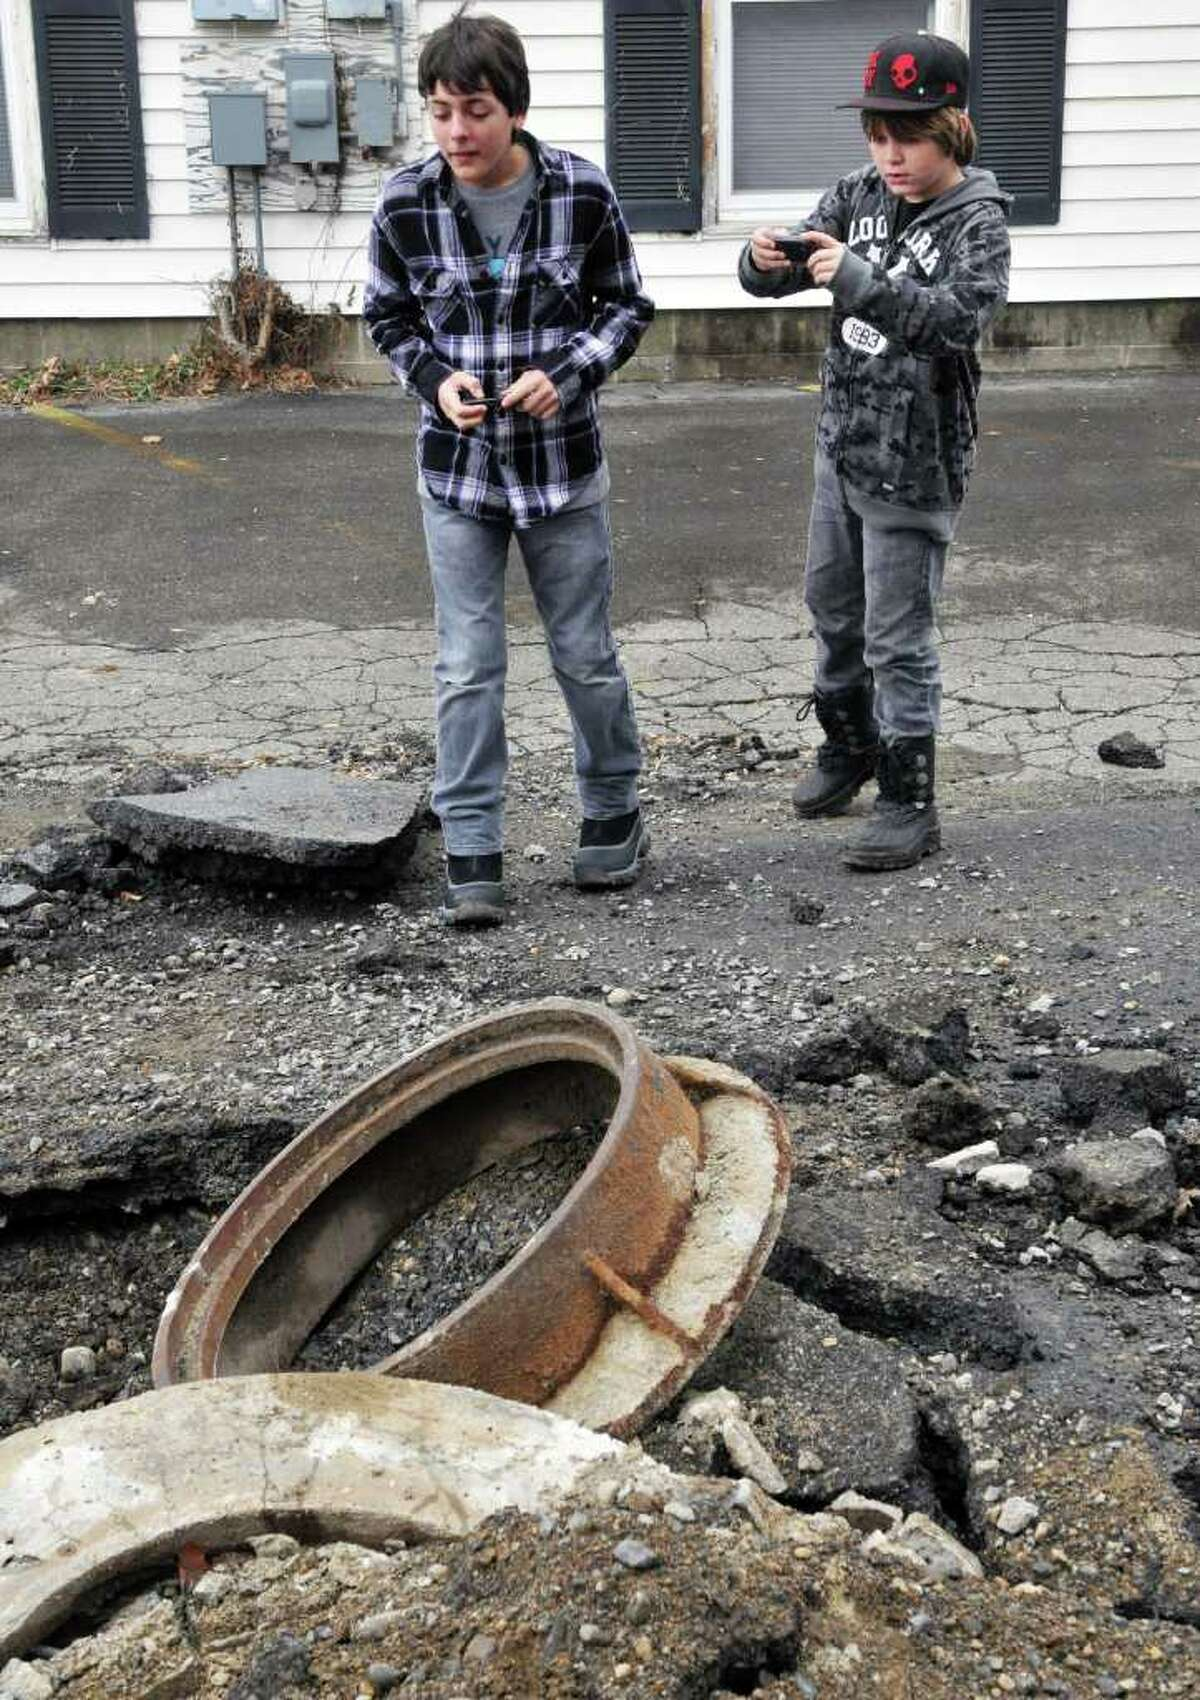 Anthony Cobassani, 12, left, and Luke Gifford, 11, both of Palm Harbor, Fla., use their phones to photograph damage to Satterlee Lane in Fort Edward Wednesday Dec. 28, 2011, from last's night's explosions. The boys were in the area visiting relatives for the holidays. (John Carl D'Annibale / Times Union)